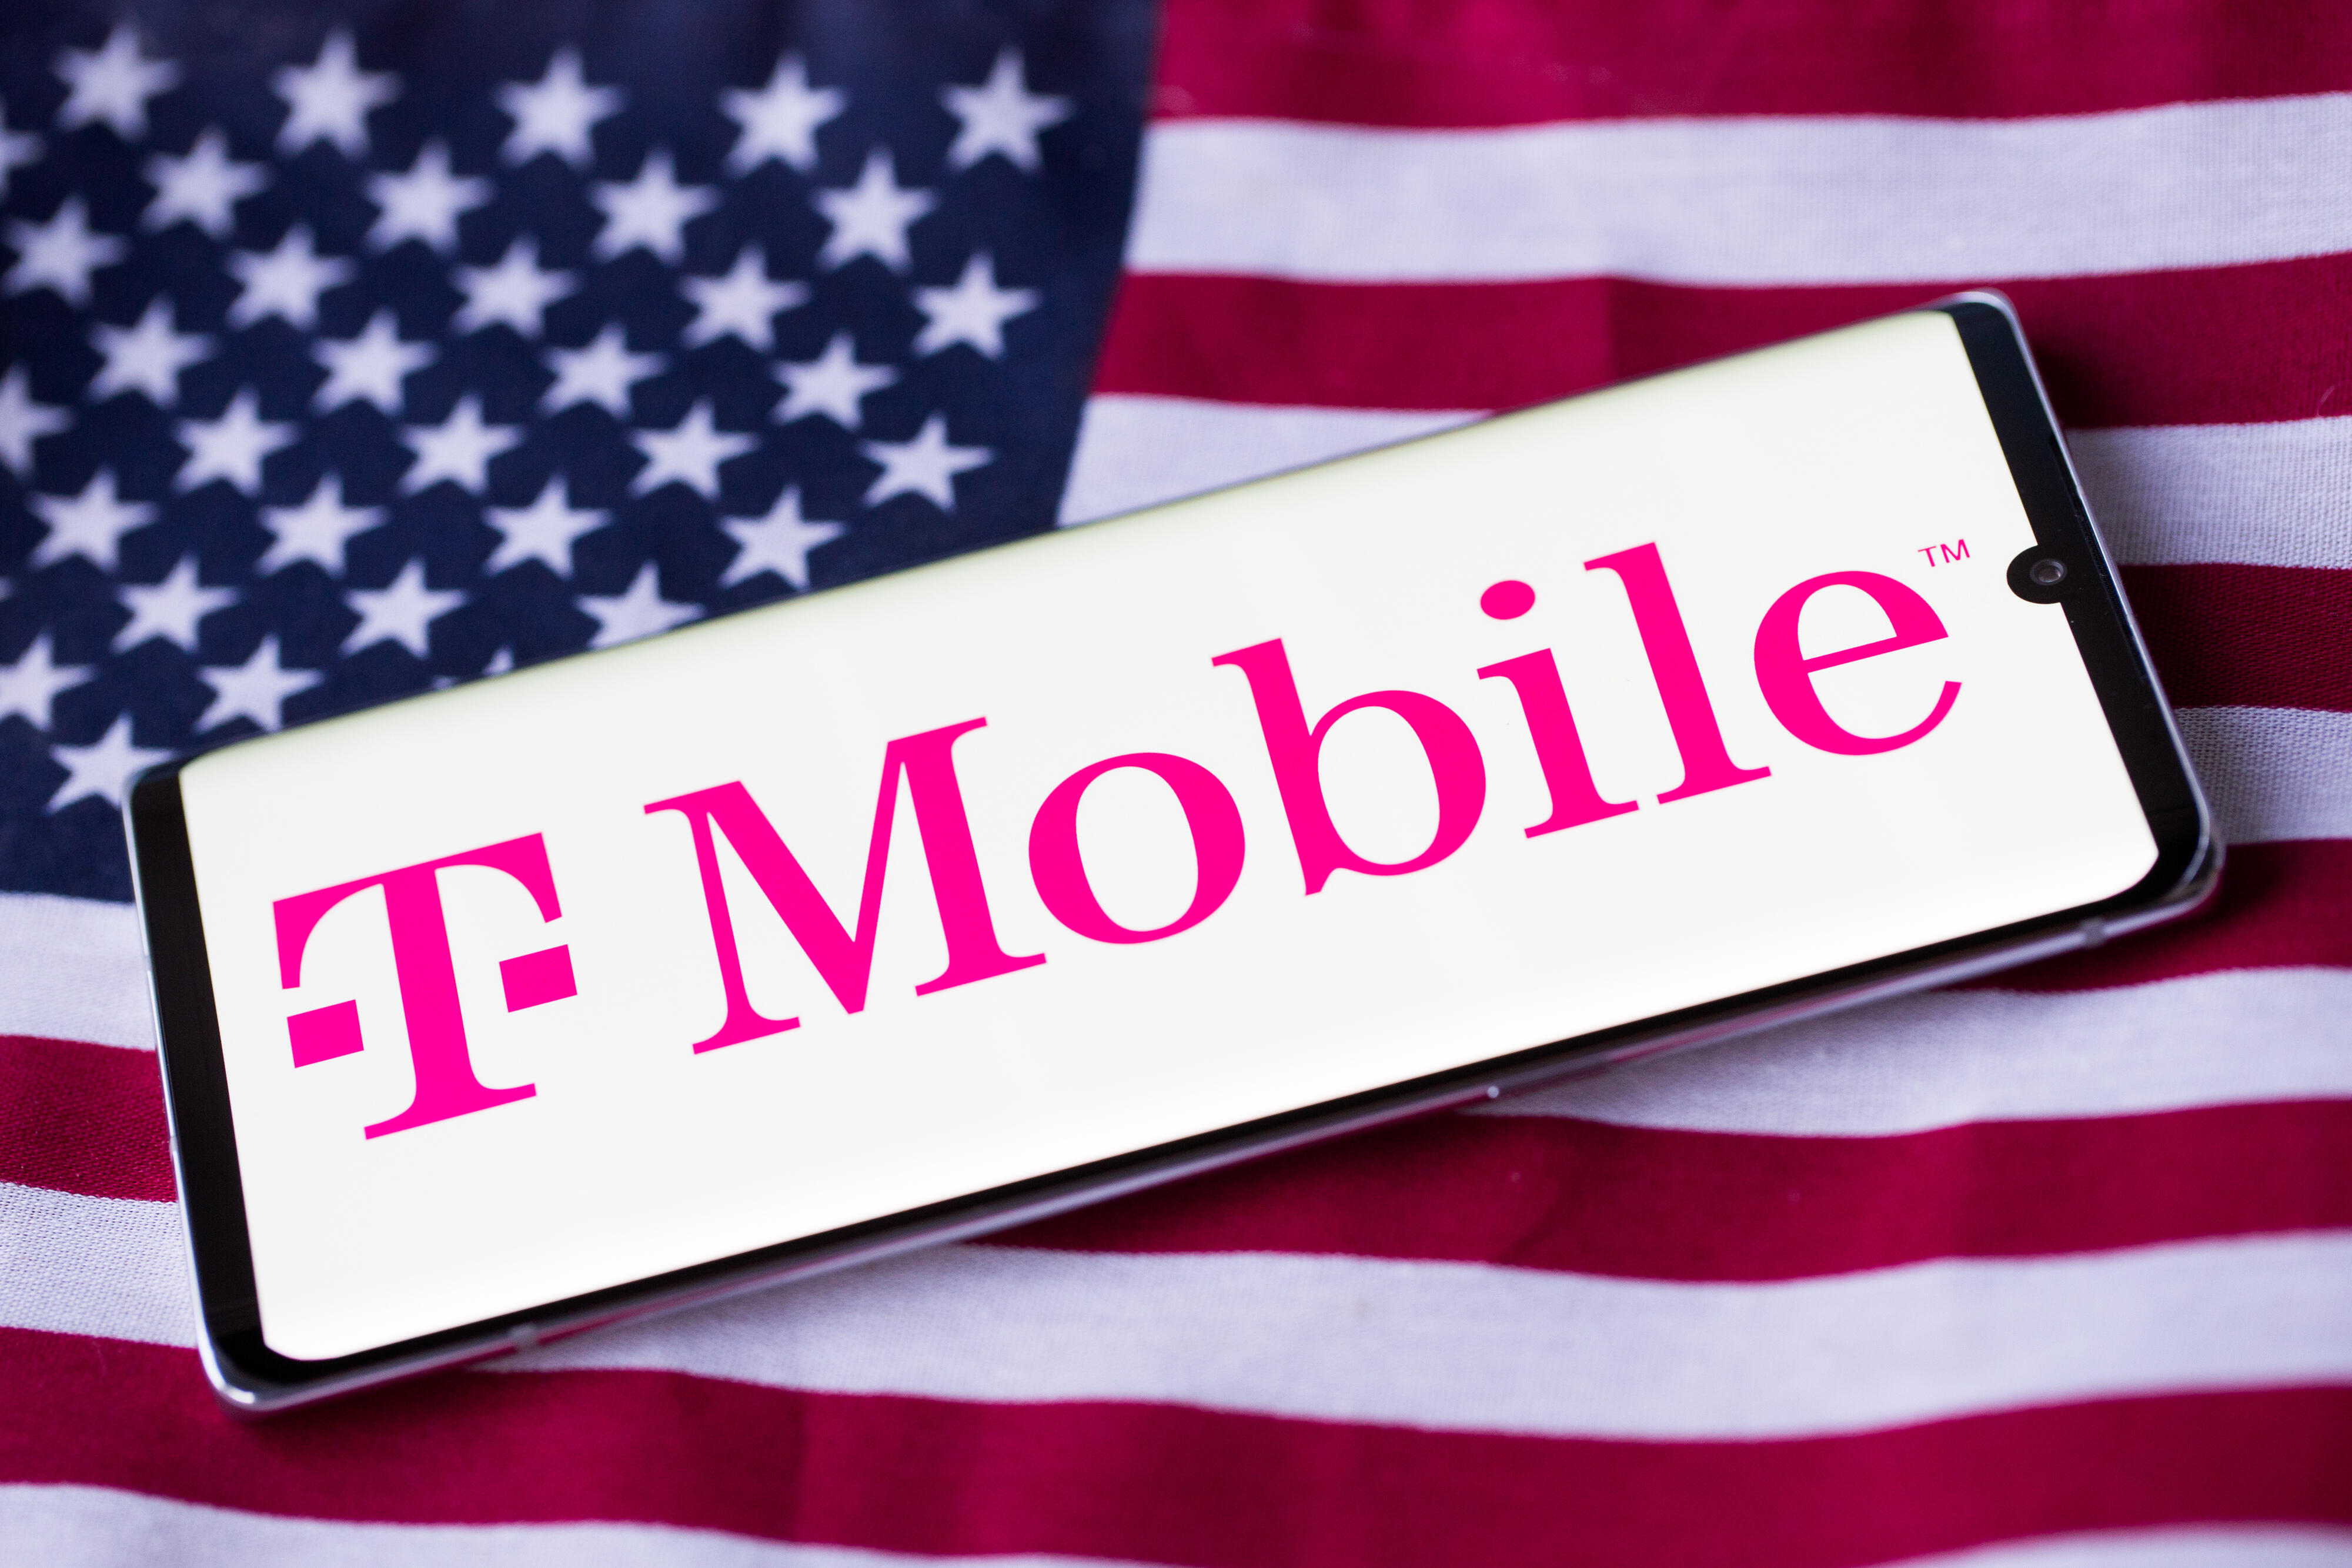 tmobile-logo-phone-american-flag-4219